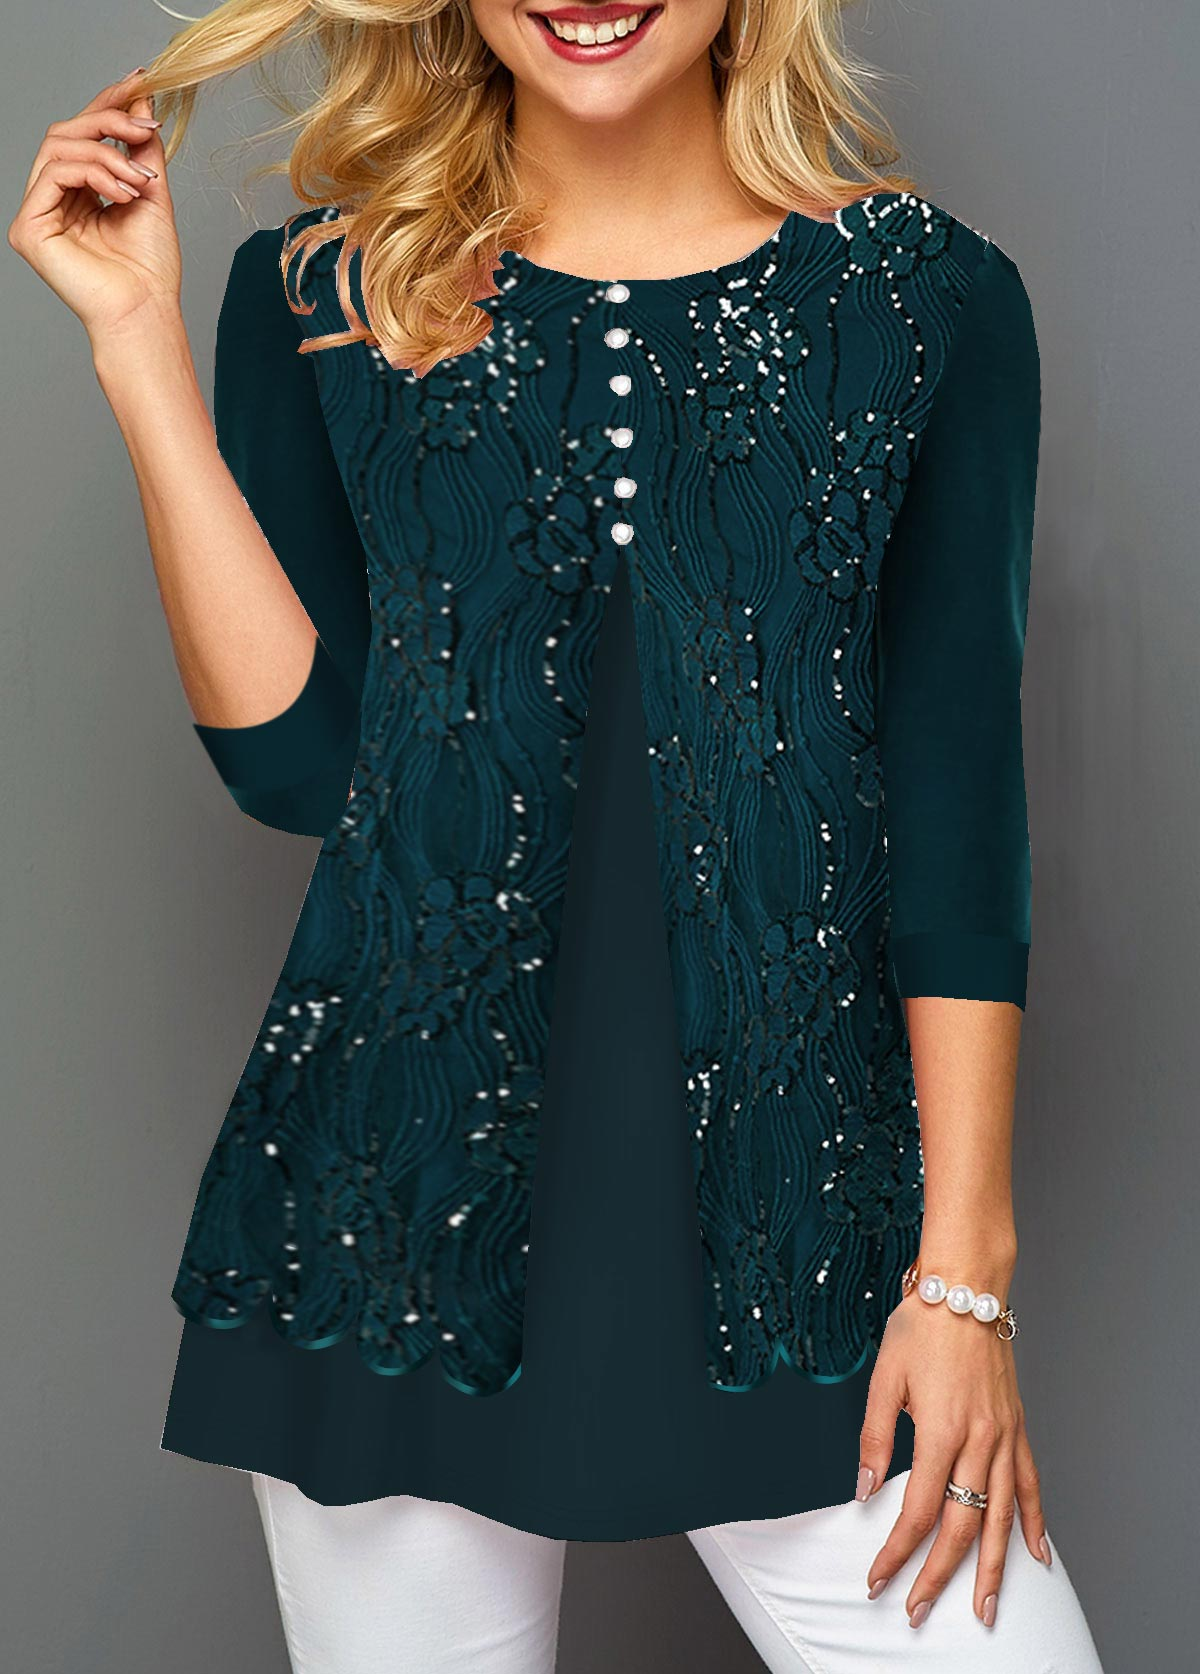 Lace Patchwork Dark Green Three Quarter Sleeve Blouse